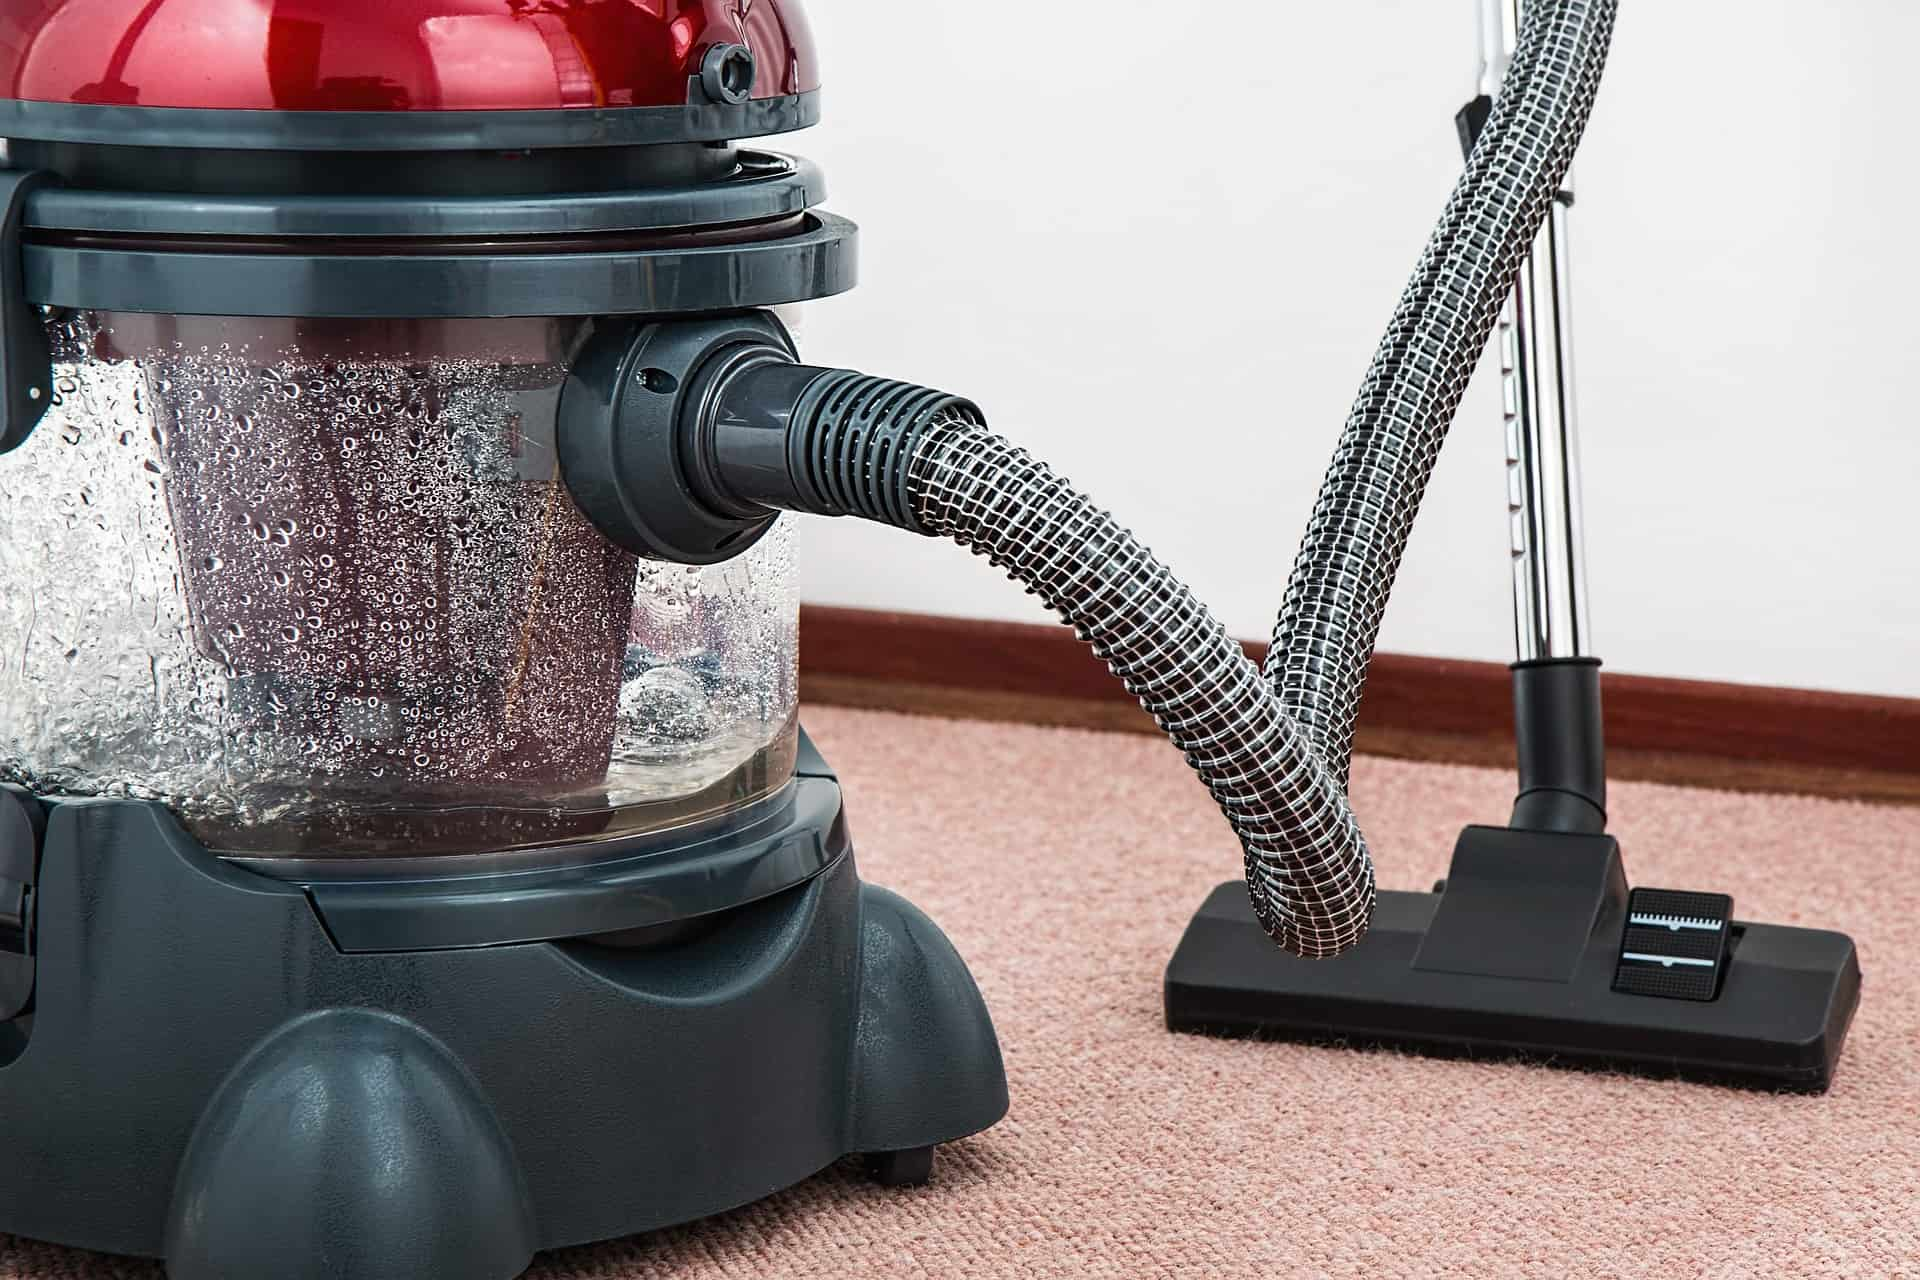 How To Use A Carpet Cleaner For Efficient Cleaning